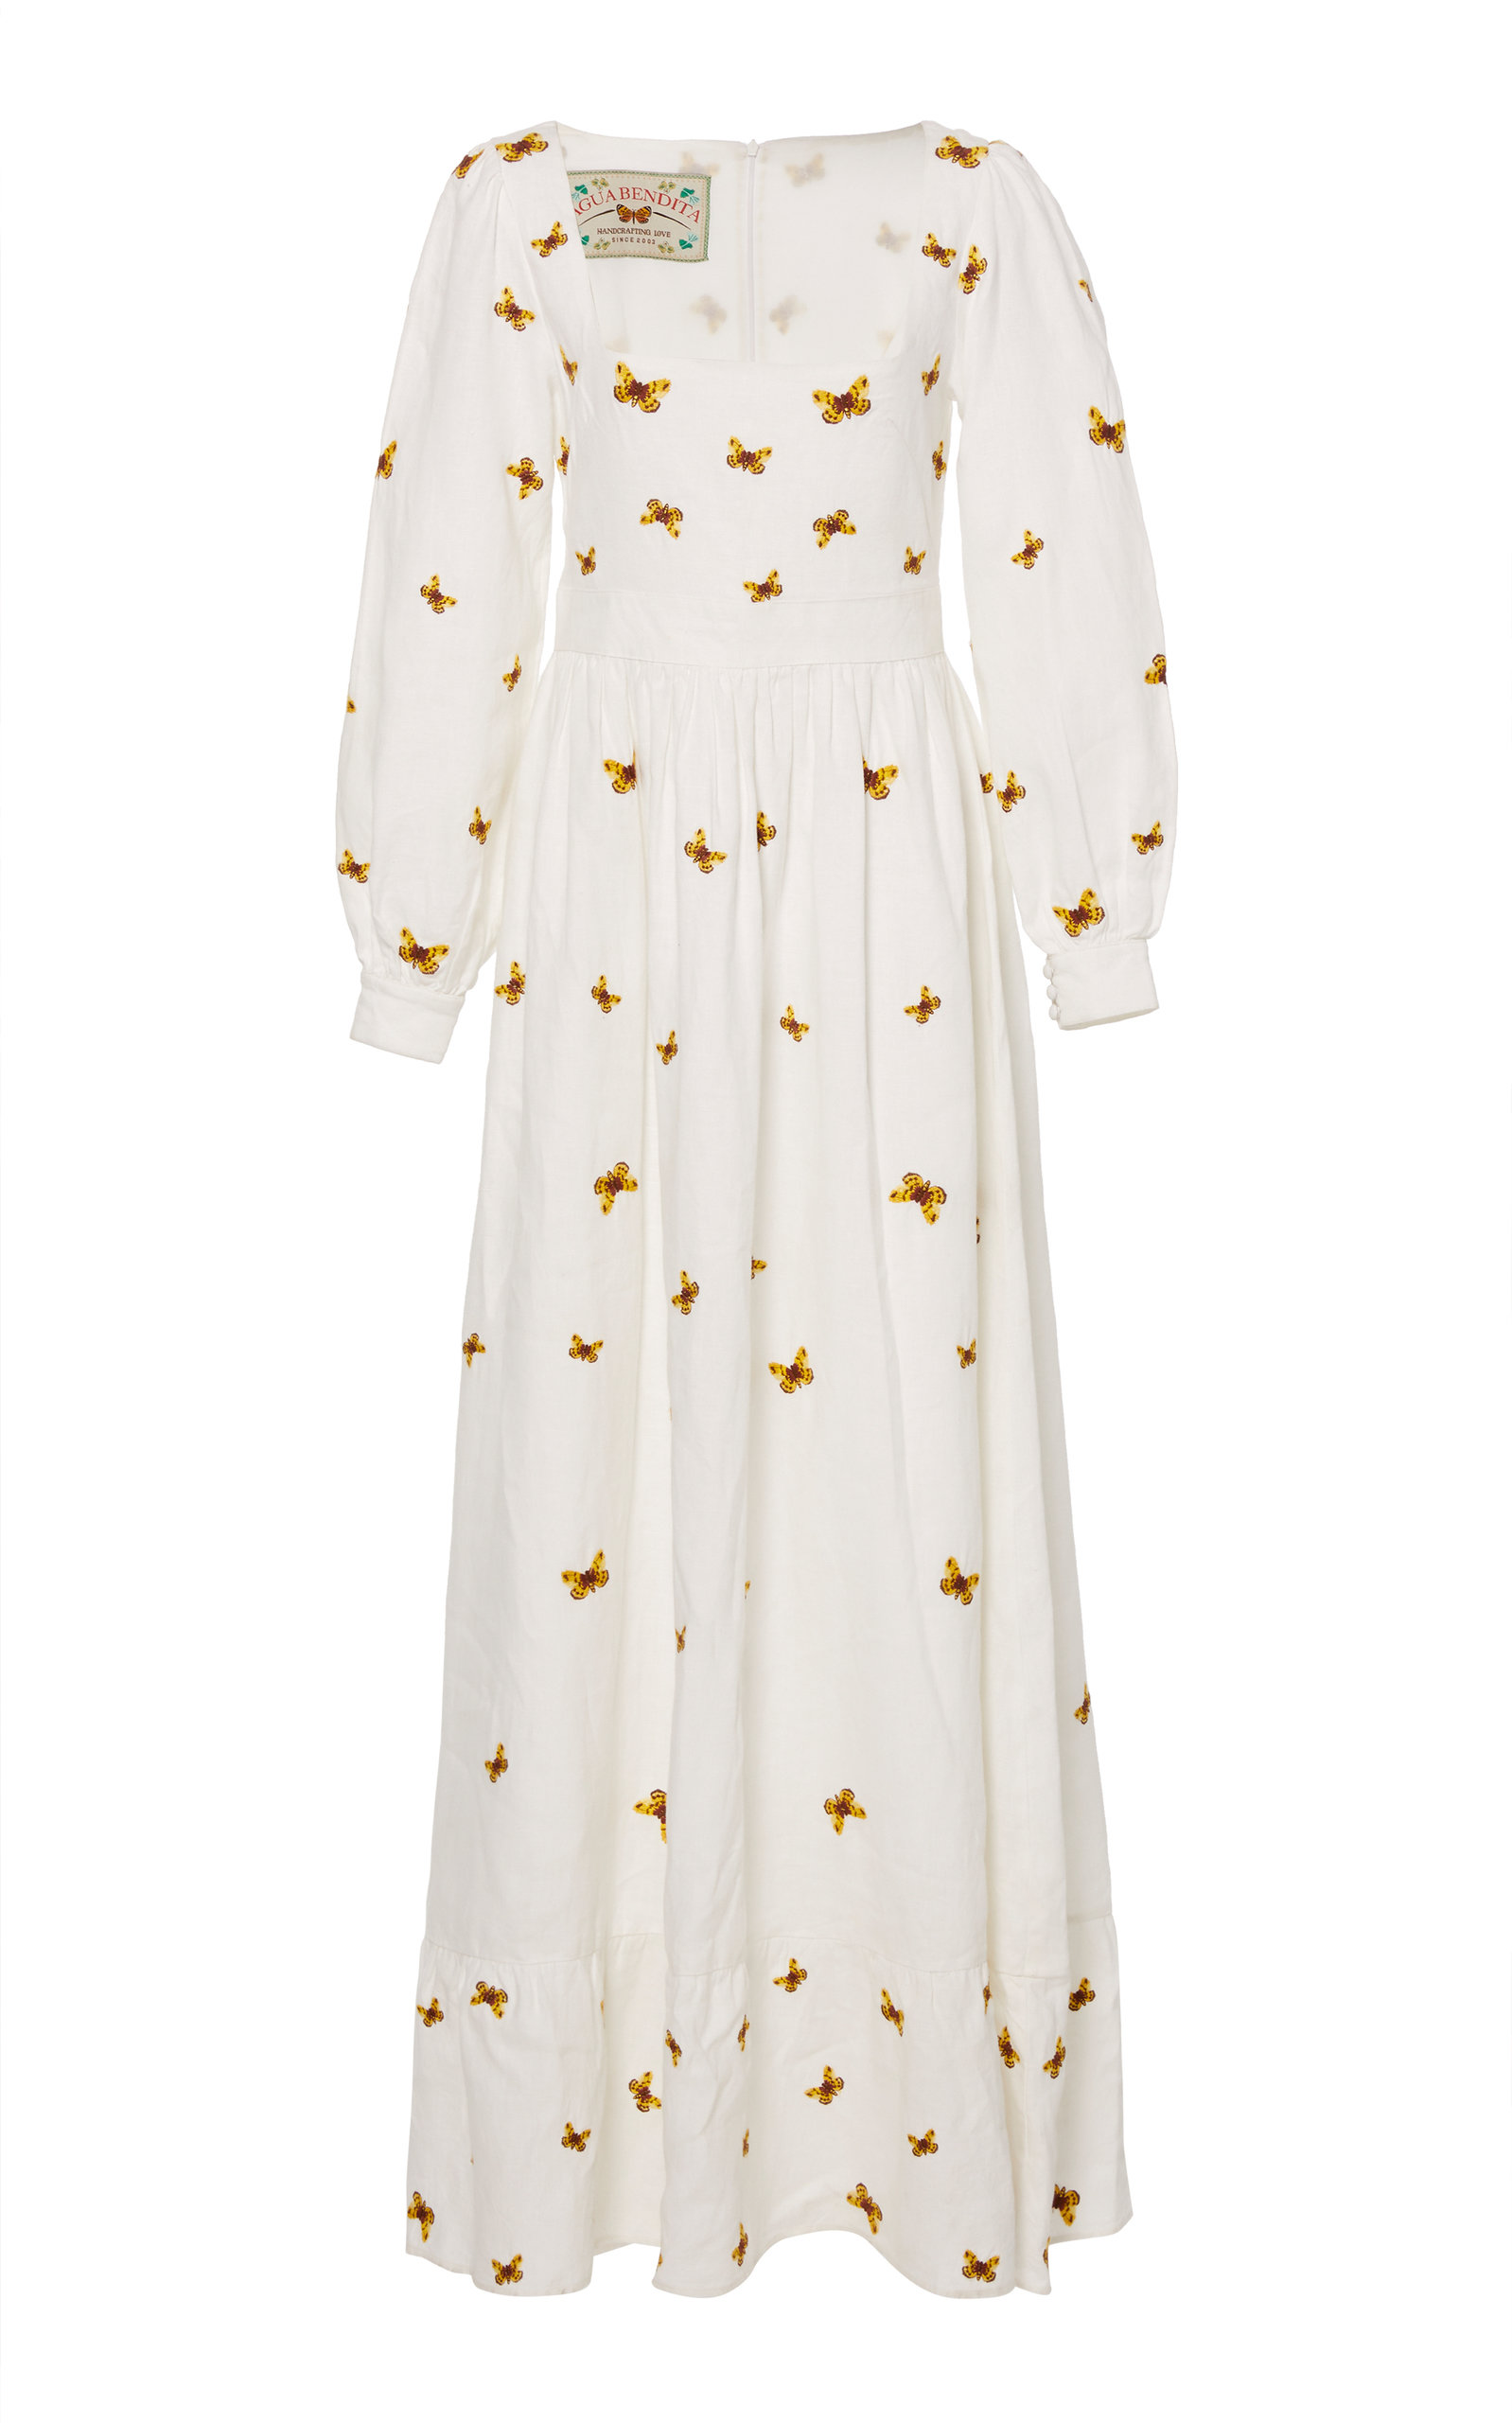 AGUA BY AGUA BENDITA Curuba Embroidered Linen Dress in White